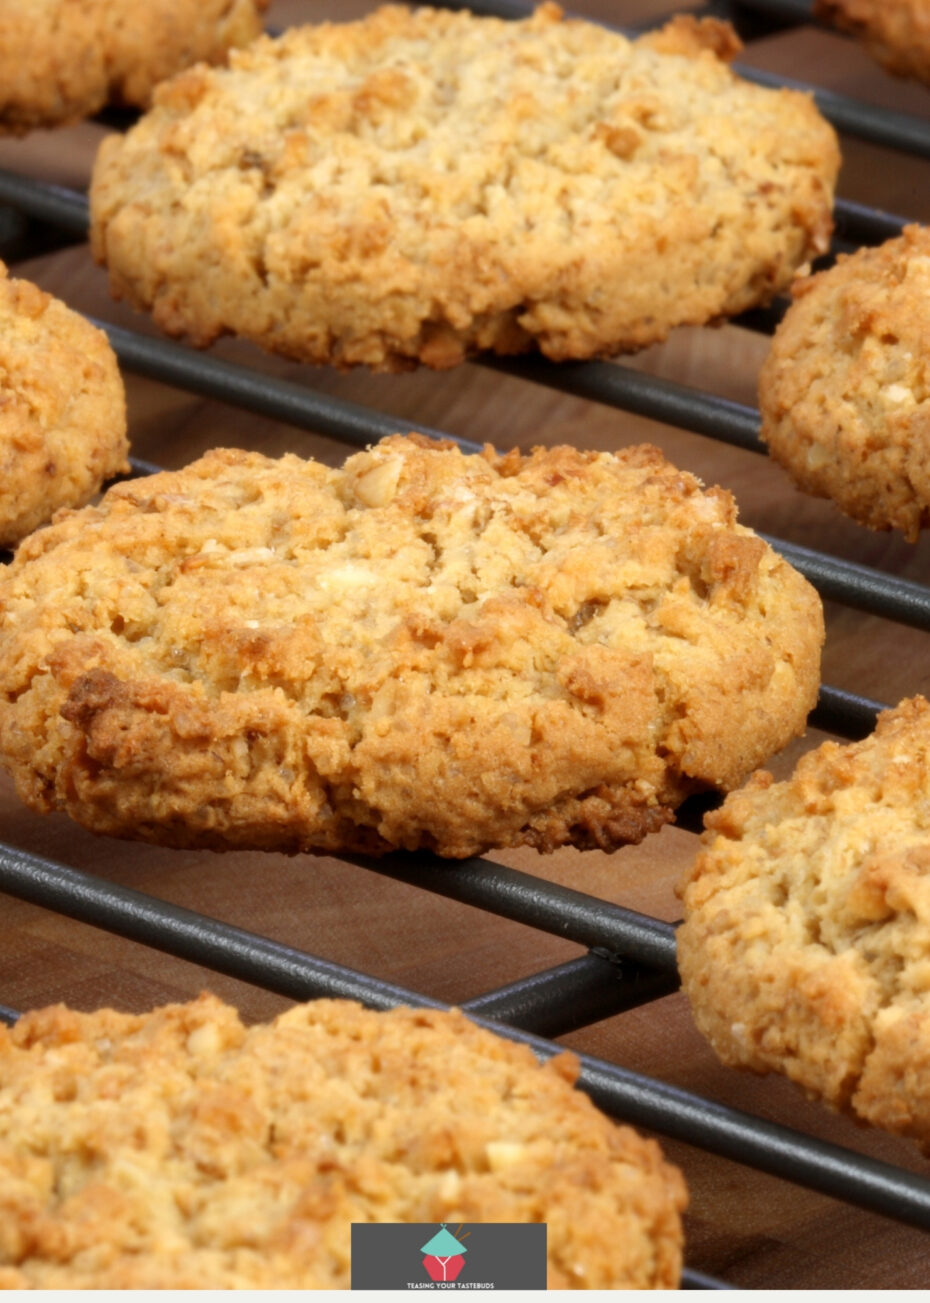 These Oatmeal Butterscotch Cookies are packed full of flavor and incredibly easy to make. Loaded with goodies such as butterscotch and cinnamon, they're always popular and great with a nice cold glass of milk.